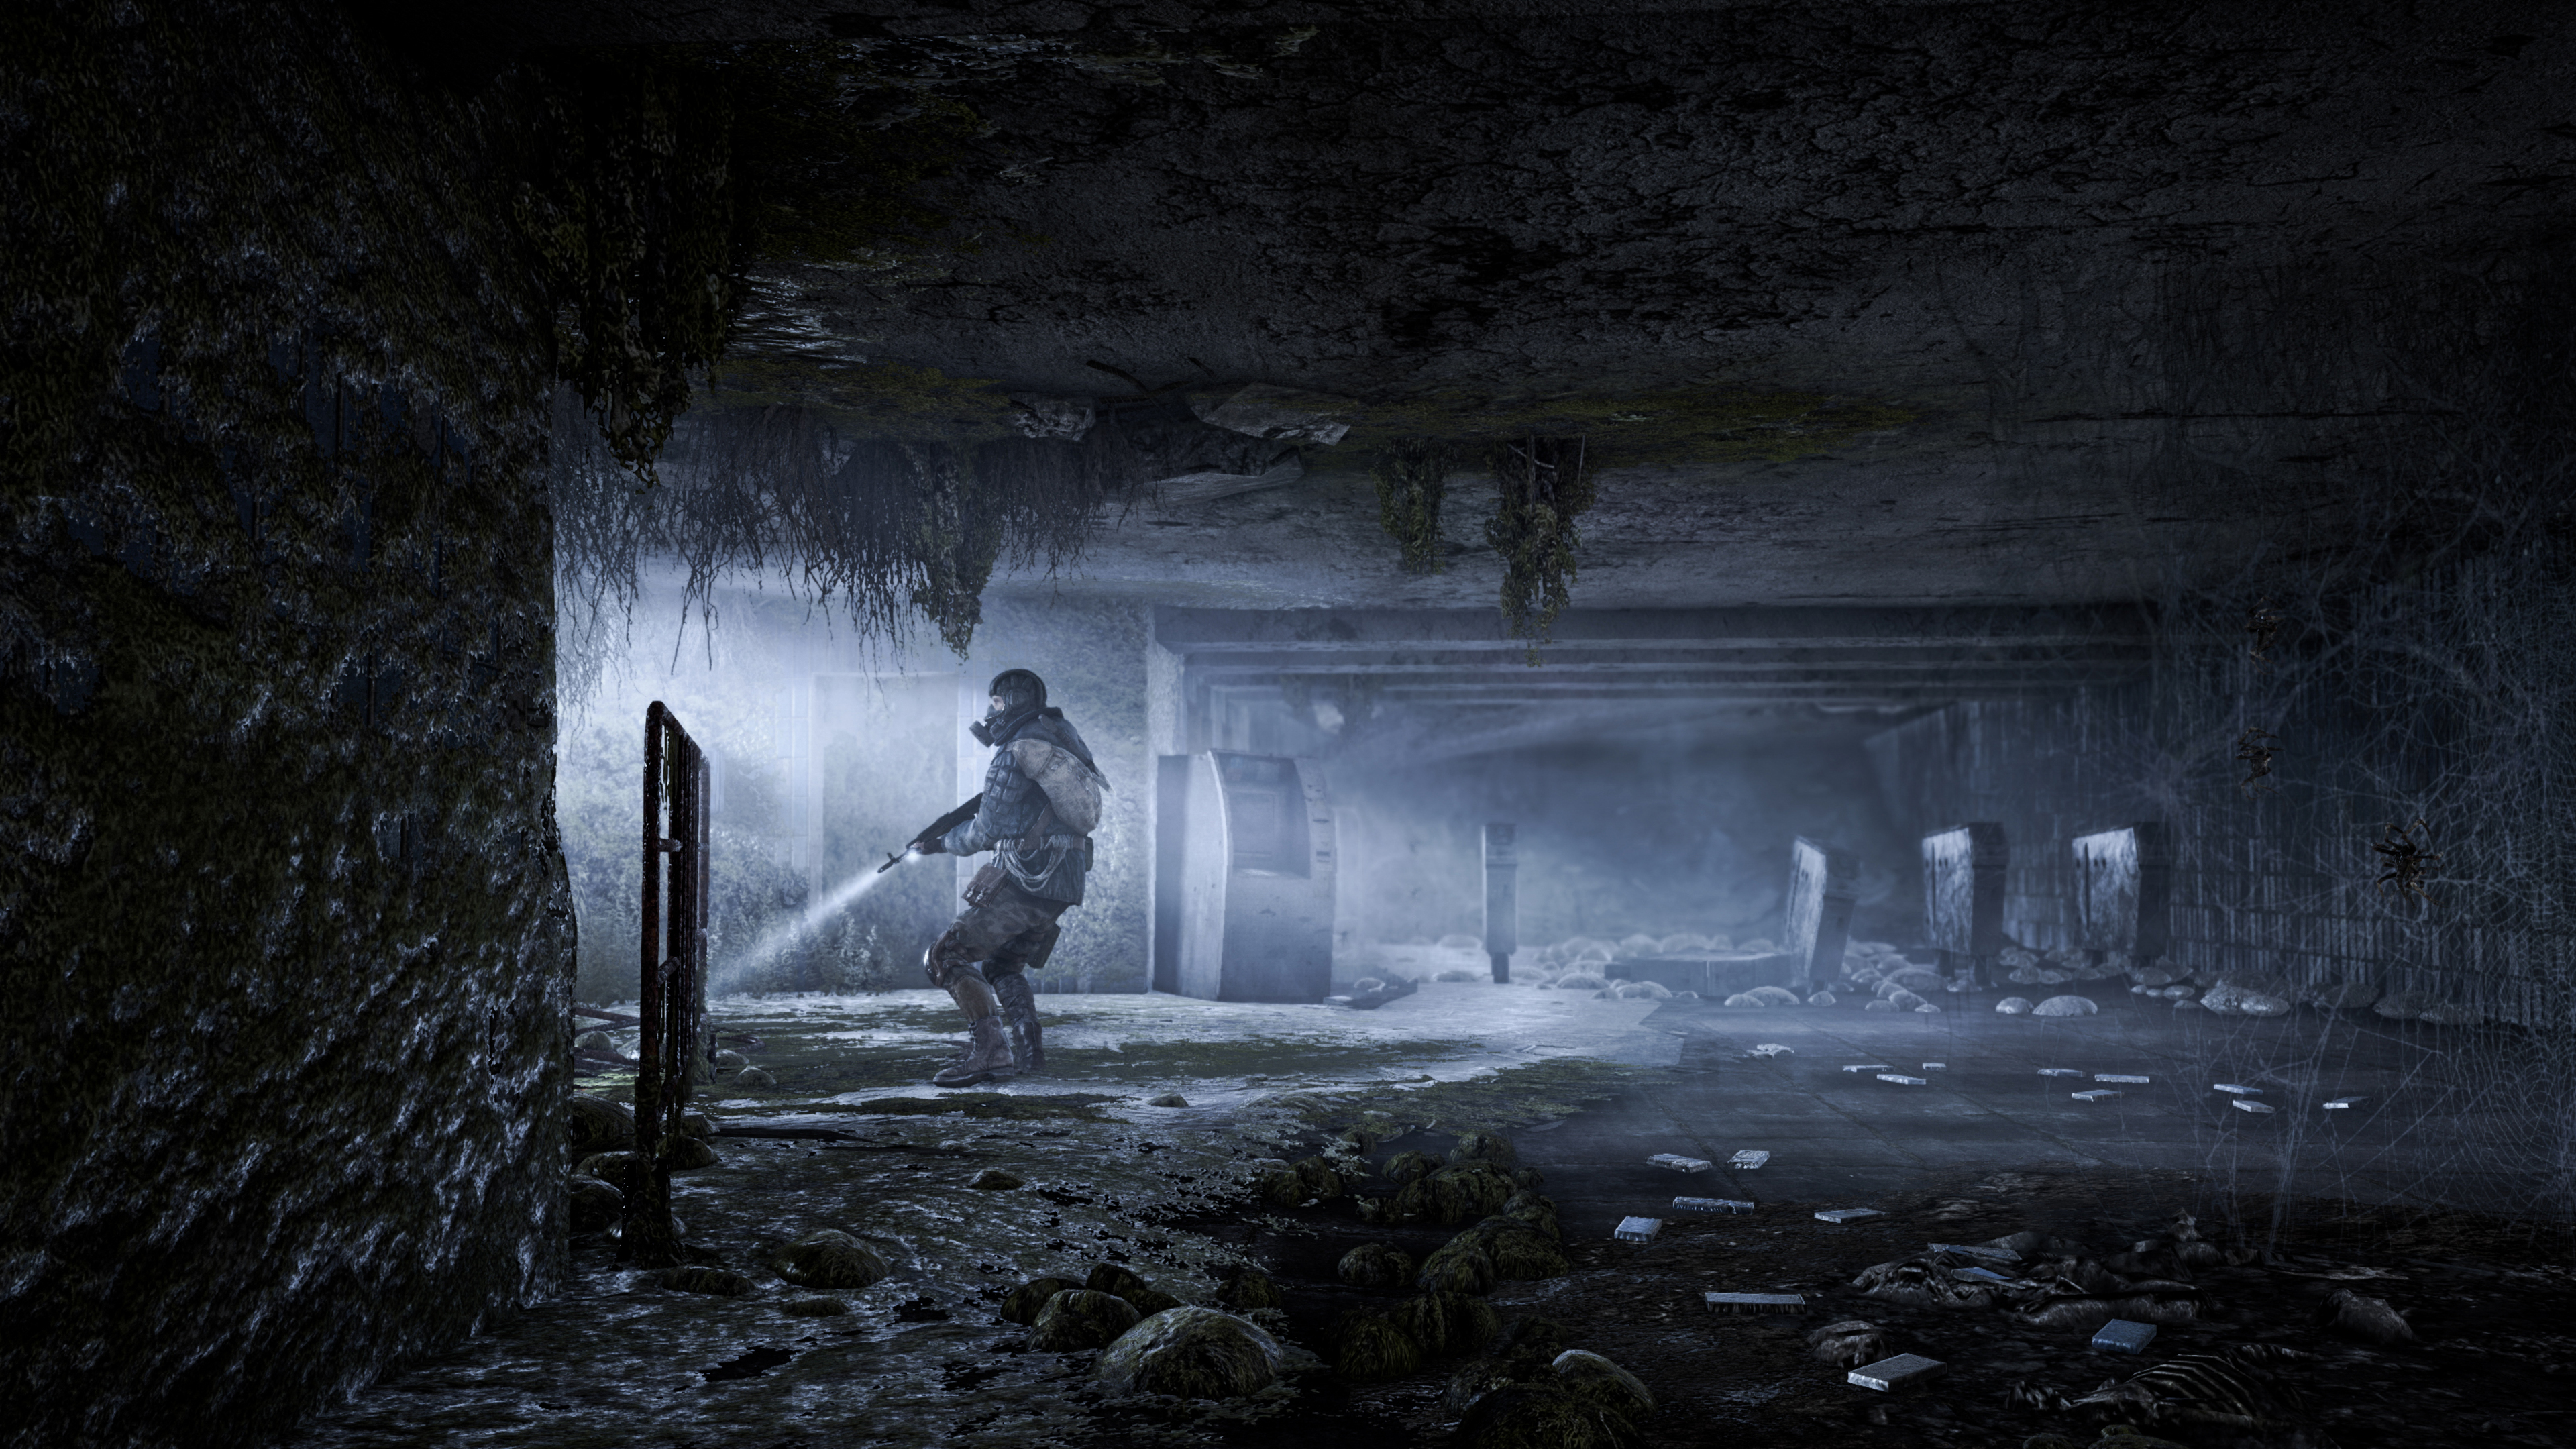 metro last light redux 4k 1553074535 - Metro Last Light Redux 4k - xbox games wallpapers, ps games wallpapers, pc games wallpapers, metro 2033 redux wallpapers, hd-wallpapers, 4k-wallpapers